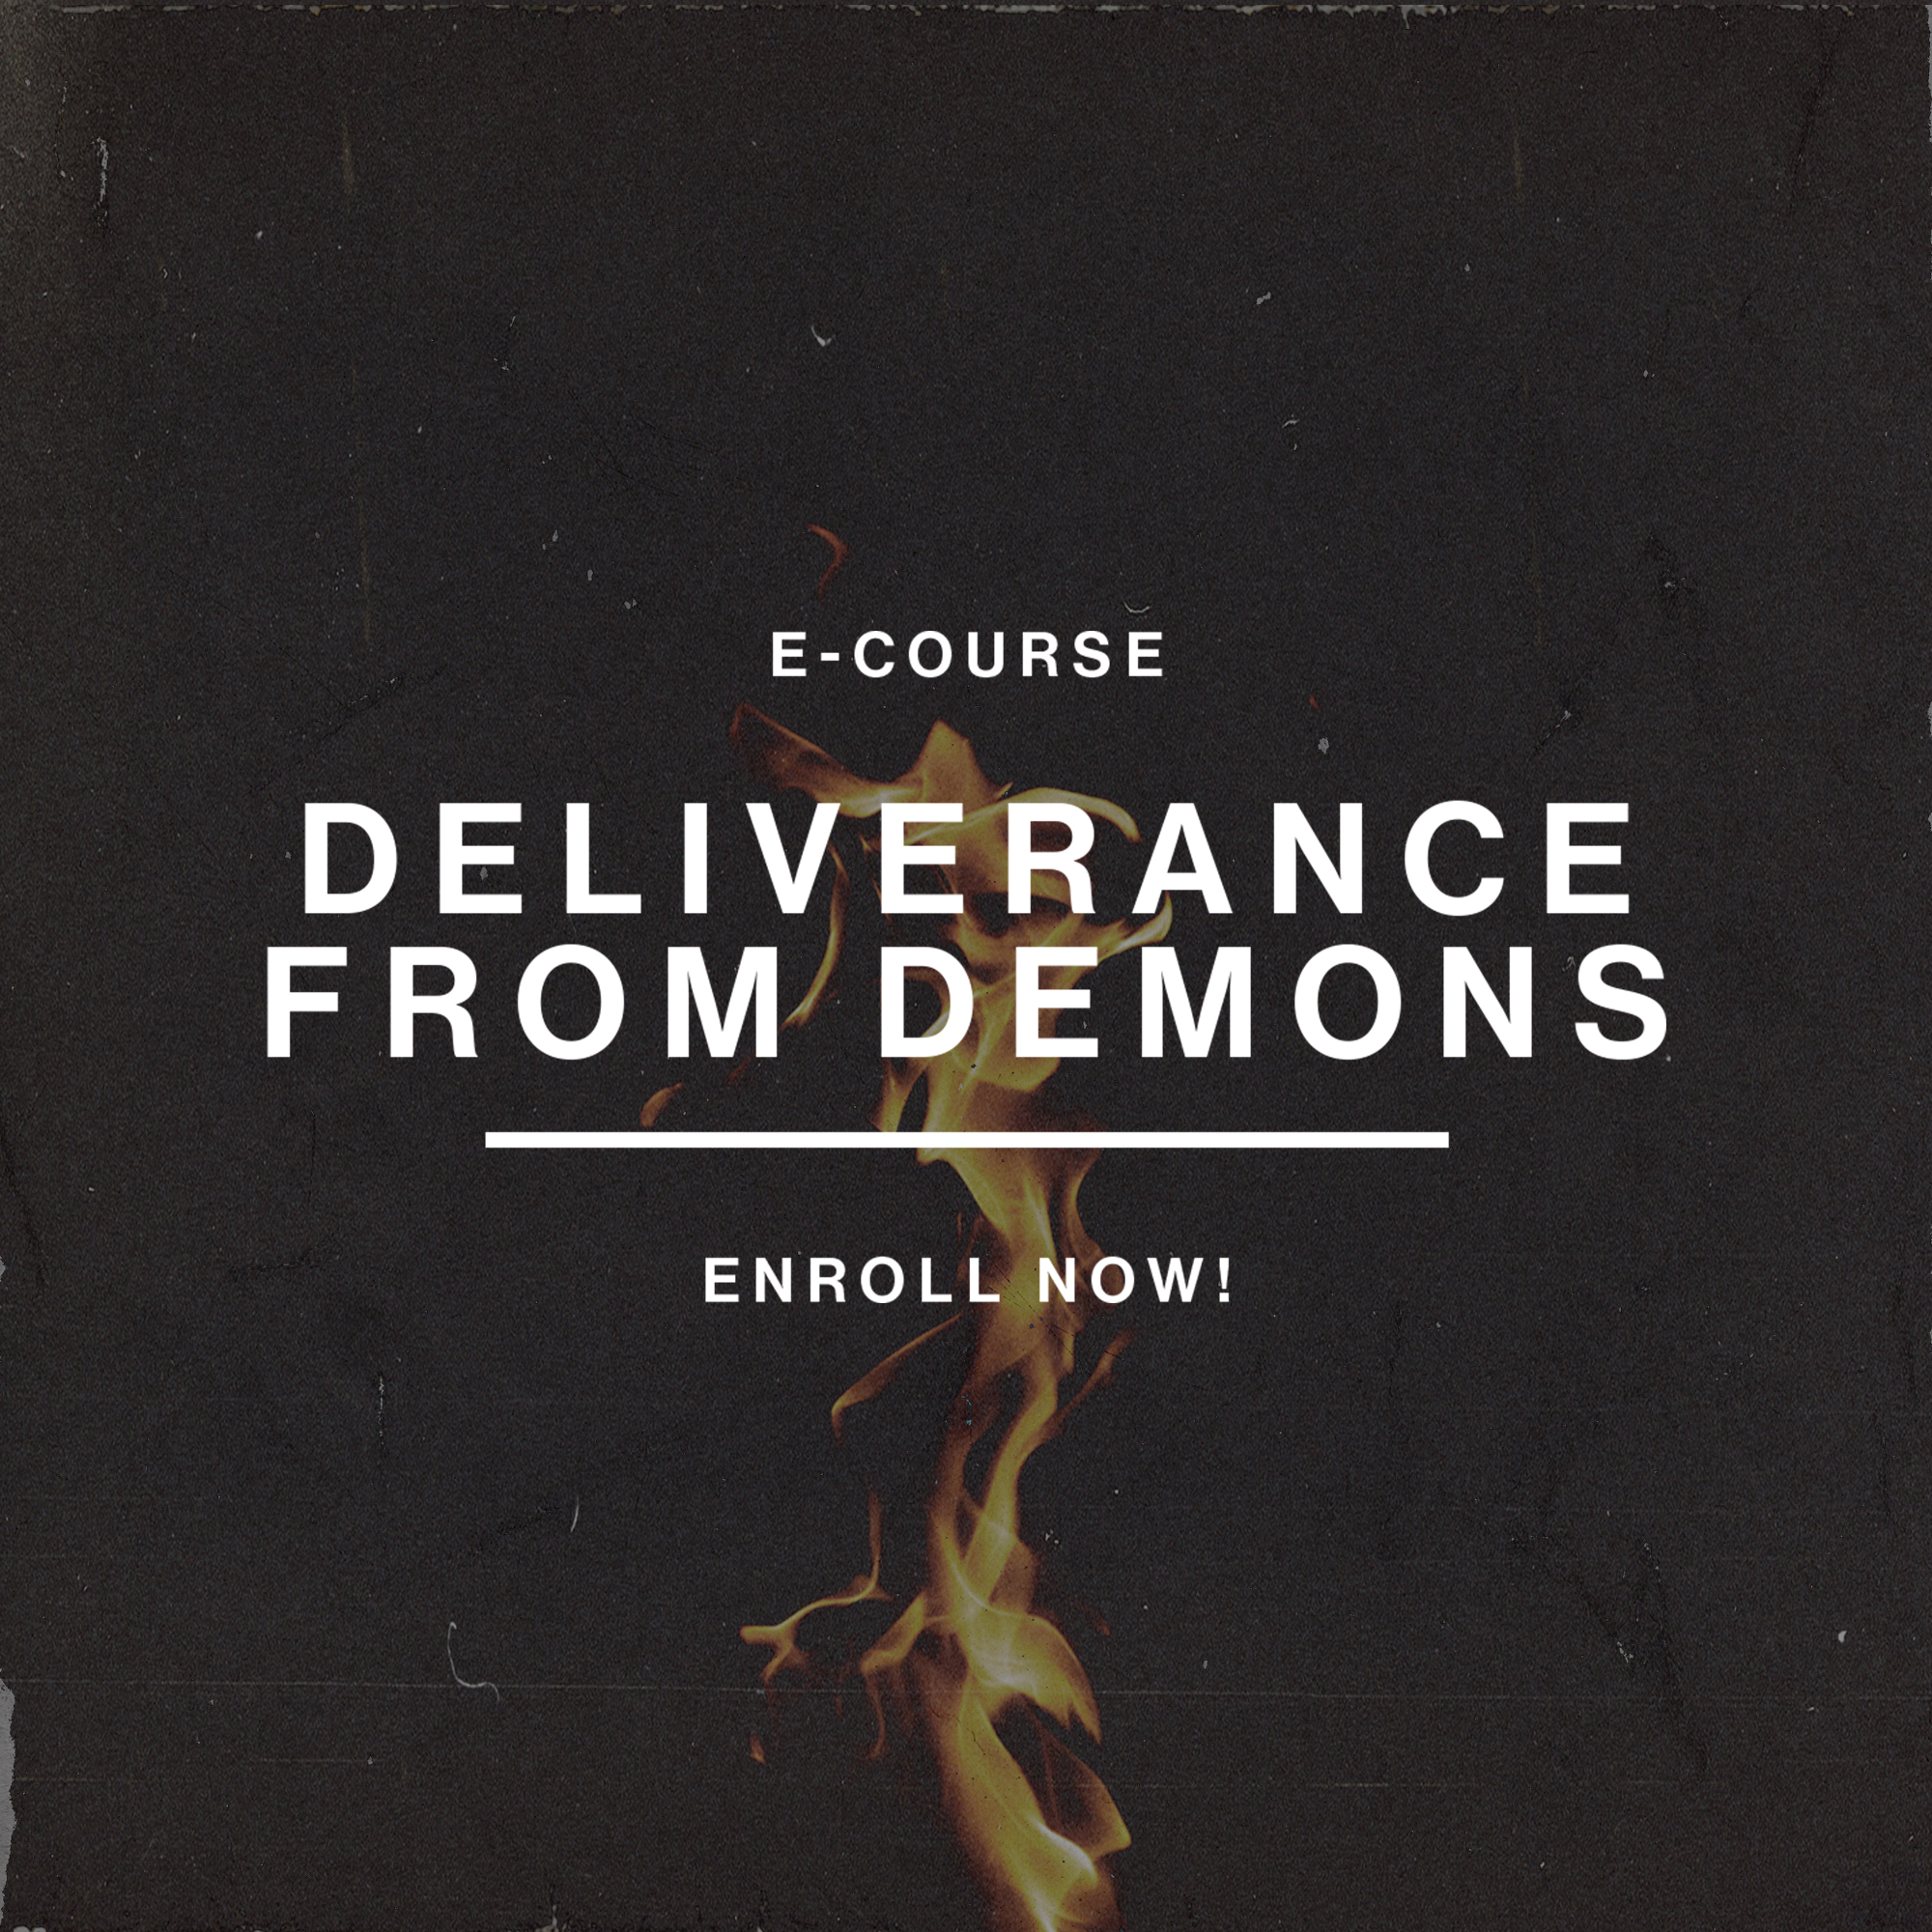 https://www.vladschool.com/courses/deliverance-from-demons